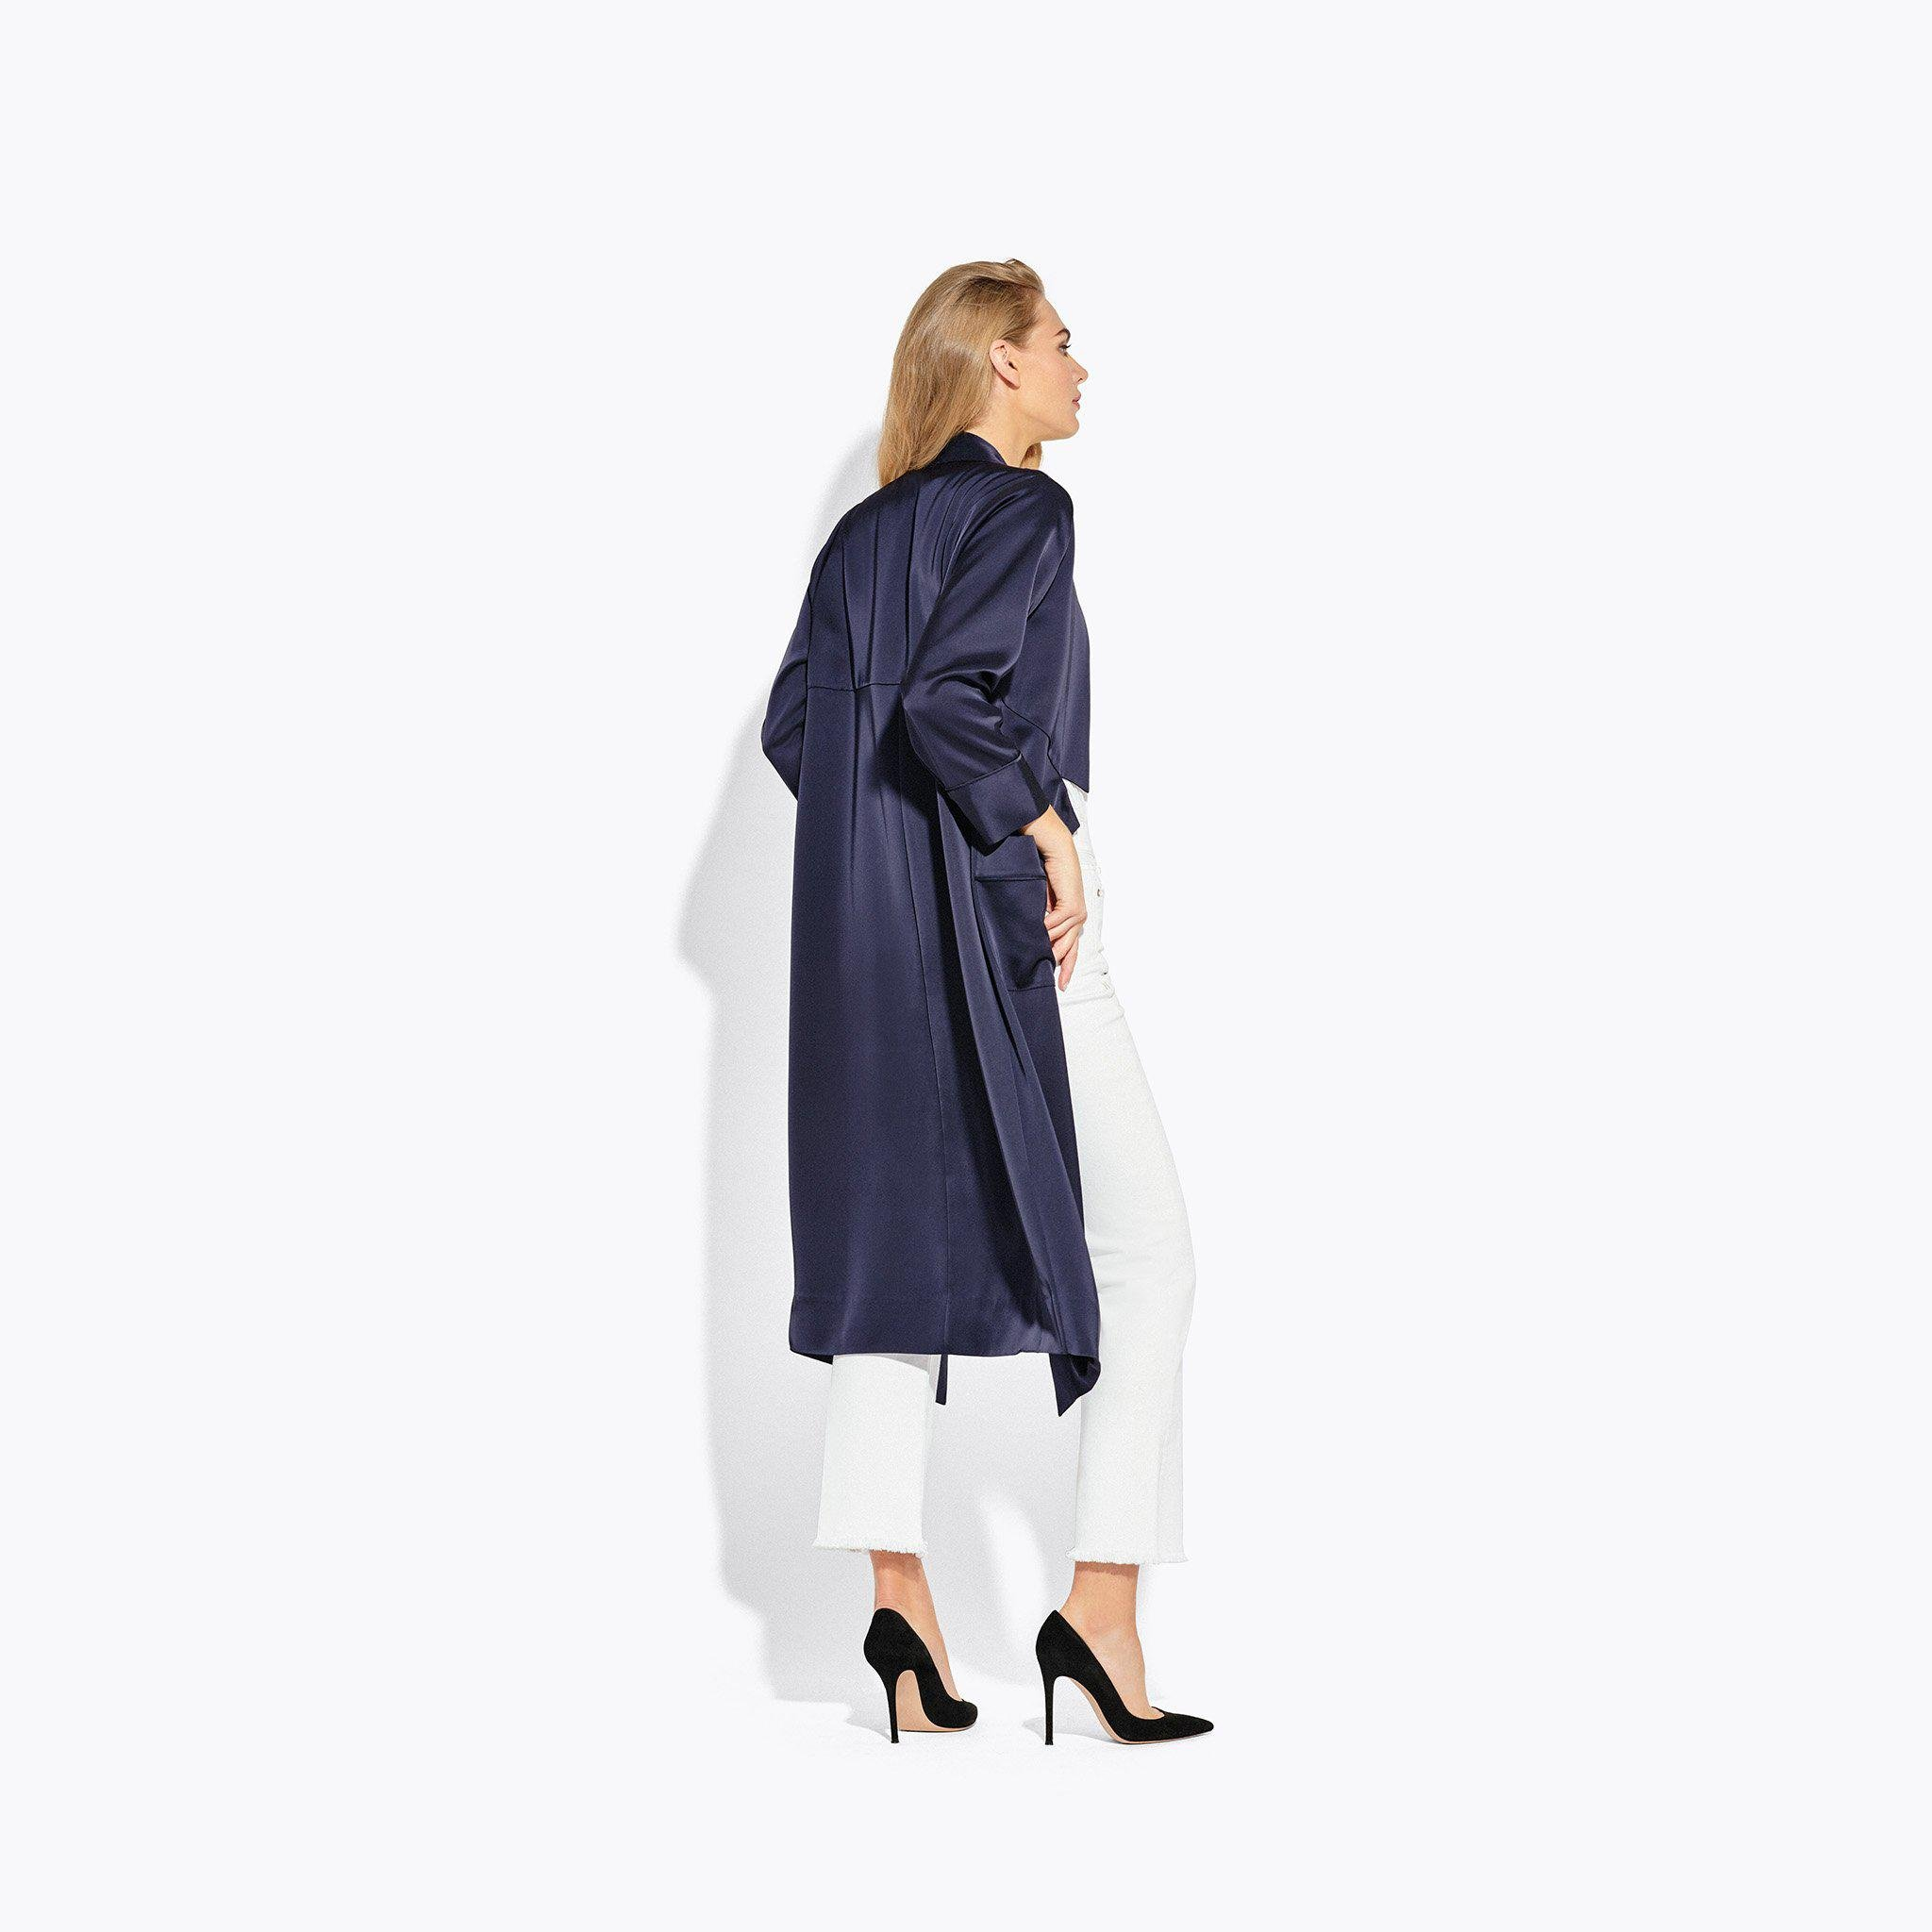 The Crystal Cove Jacket 3